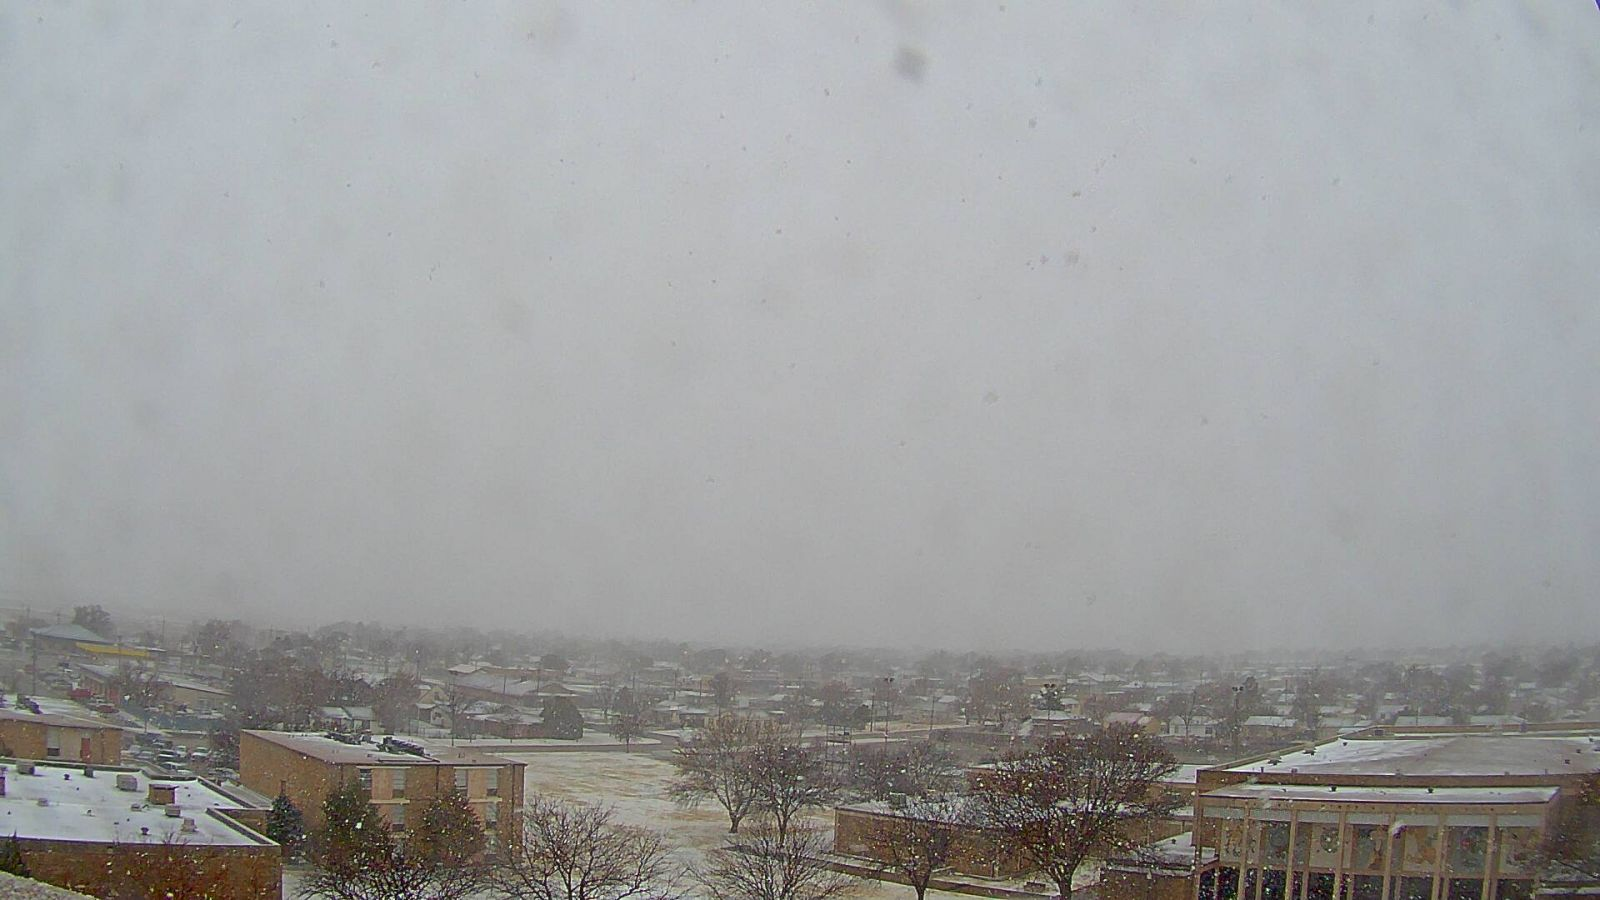 What it looked like in Plainview during the early afternoon of March 4, 2015. The image is courtesy of KAMC.